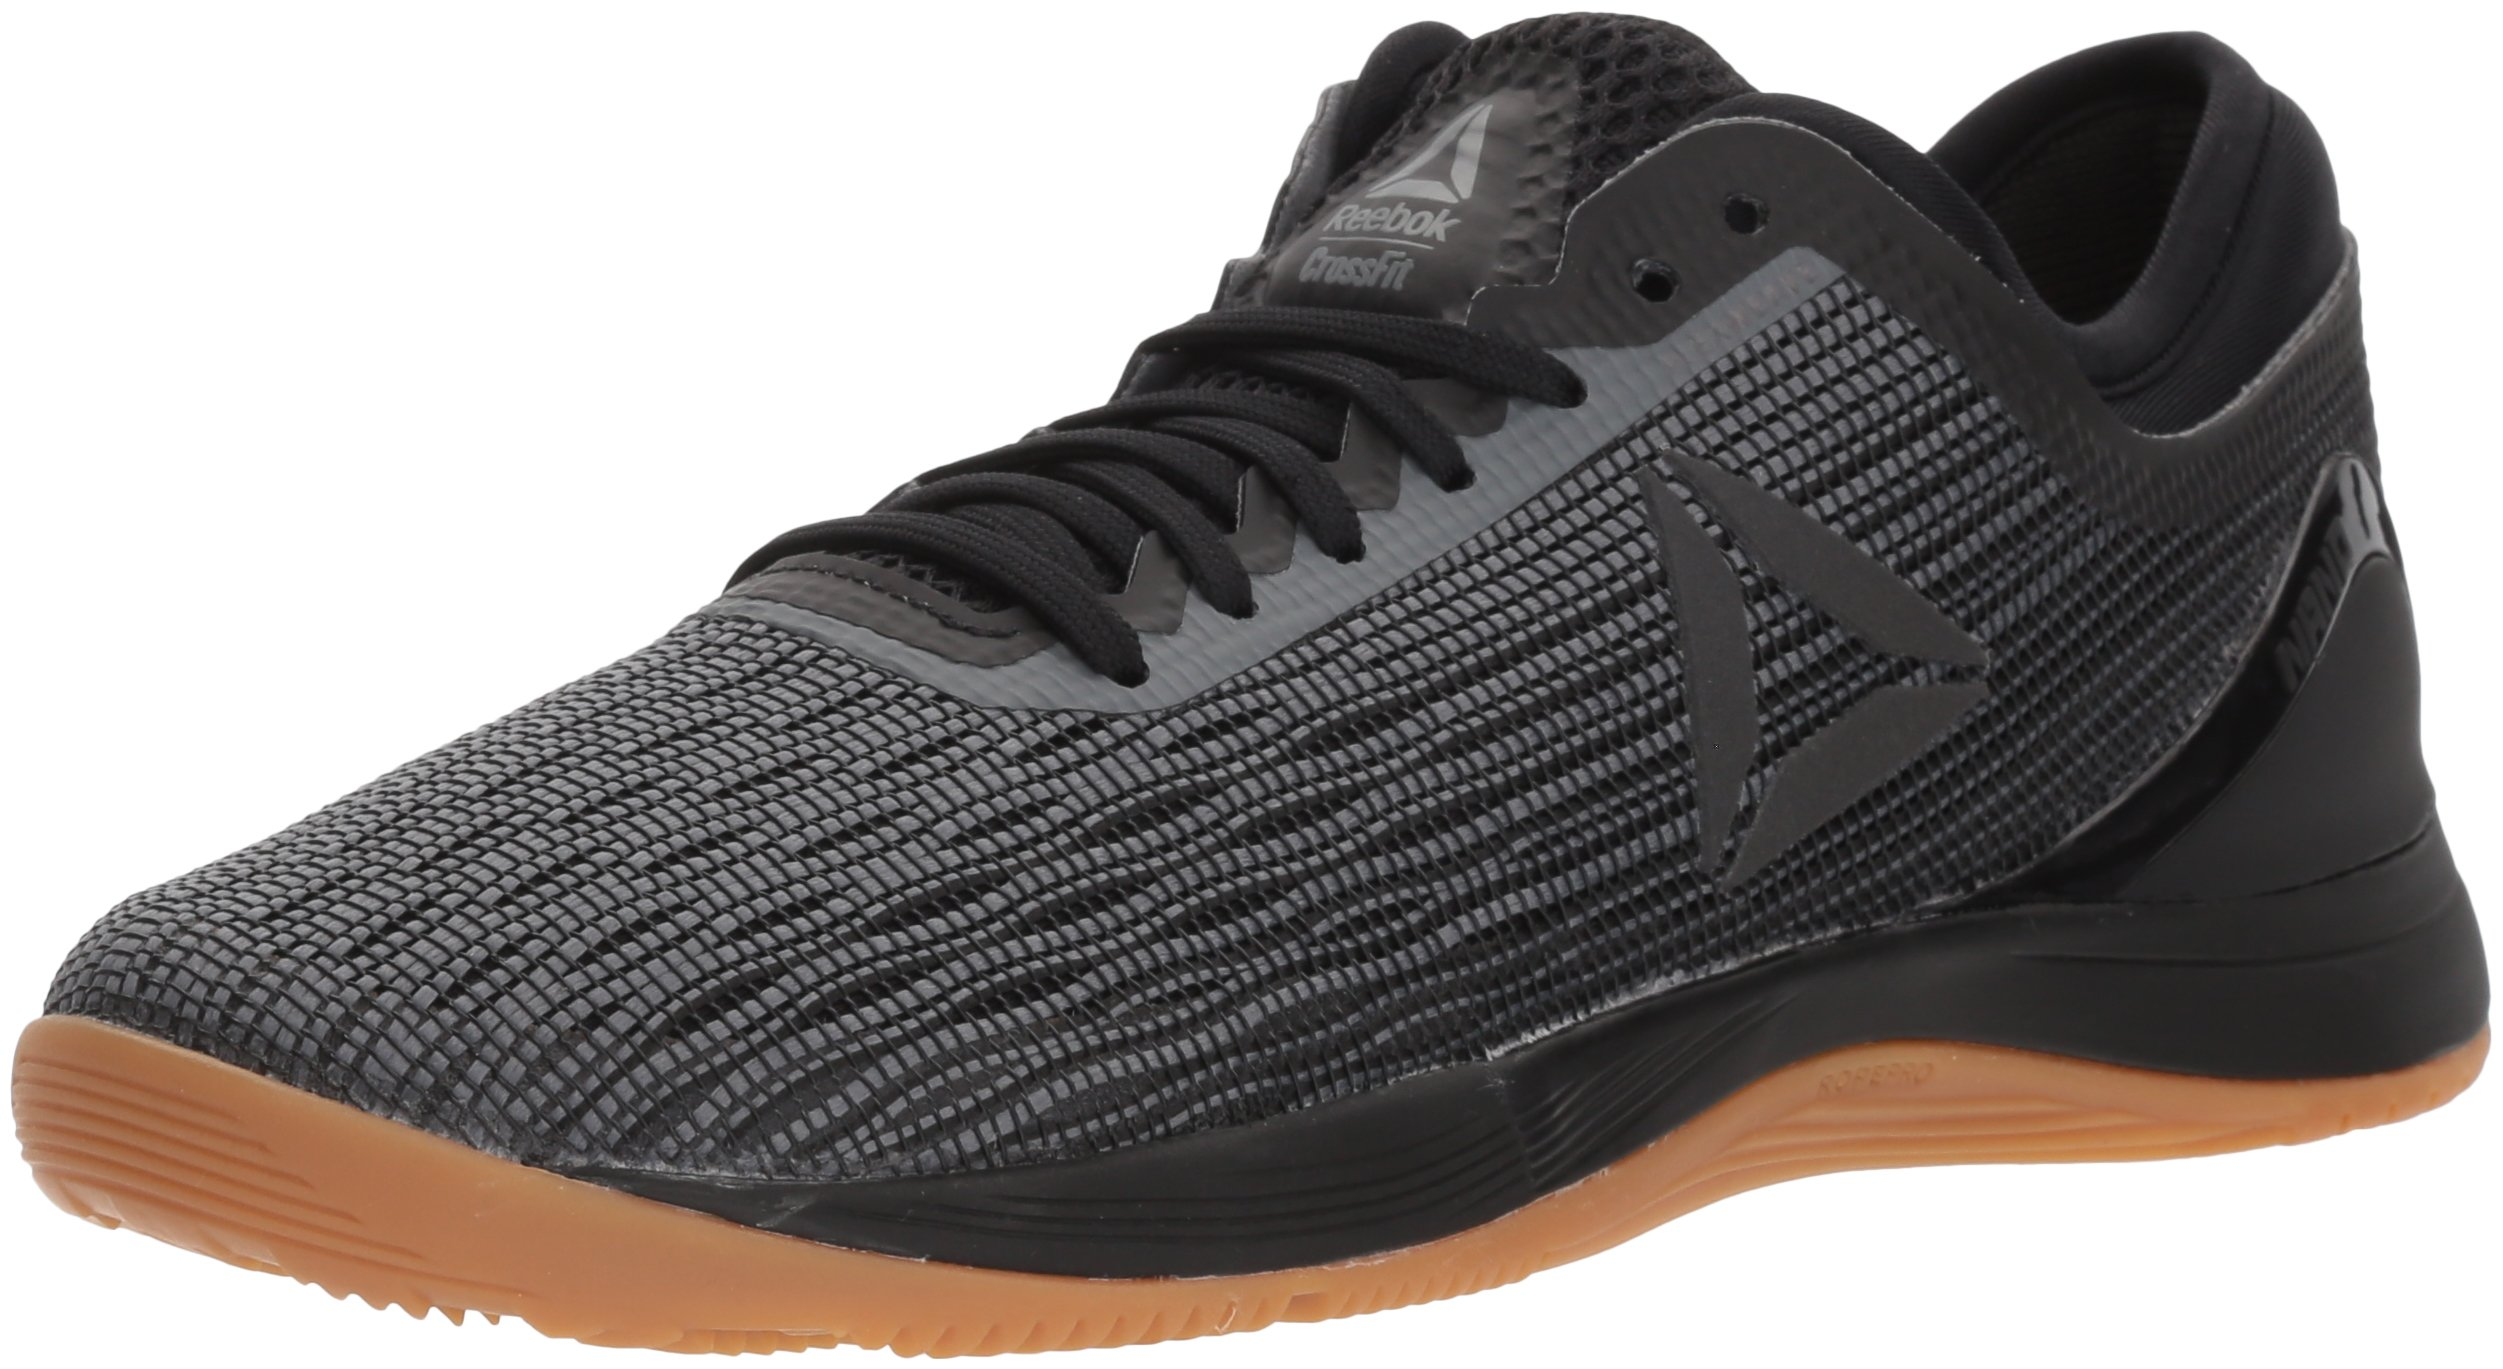 Reebok Women's Crossfit Nano 8.0 Flexweave Cross Trainer, Black/Alloy/Gum, 10 M US